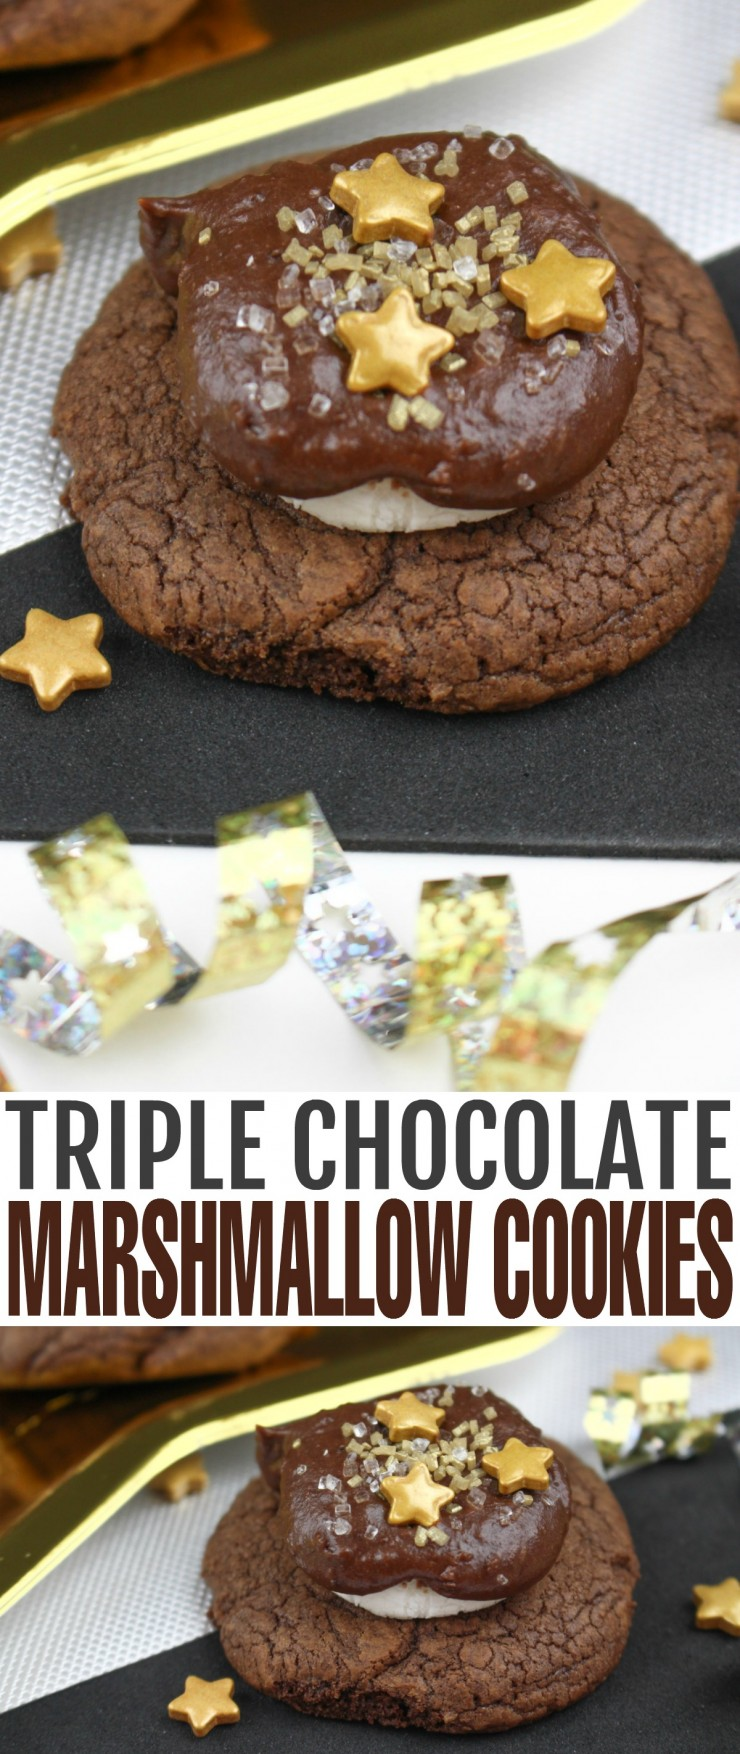 These Triple Chocolate Marshmallow Cookies will satisfy any chocolate craving with their fudgy chocolate cookie base topped with marshmallow smothered in more chocolate. These are any chocolate lovers dream come true!